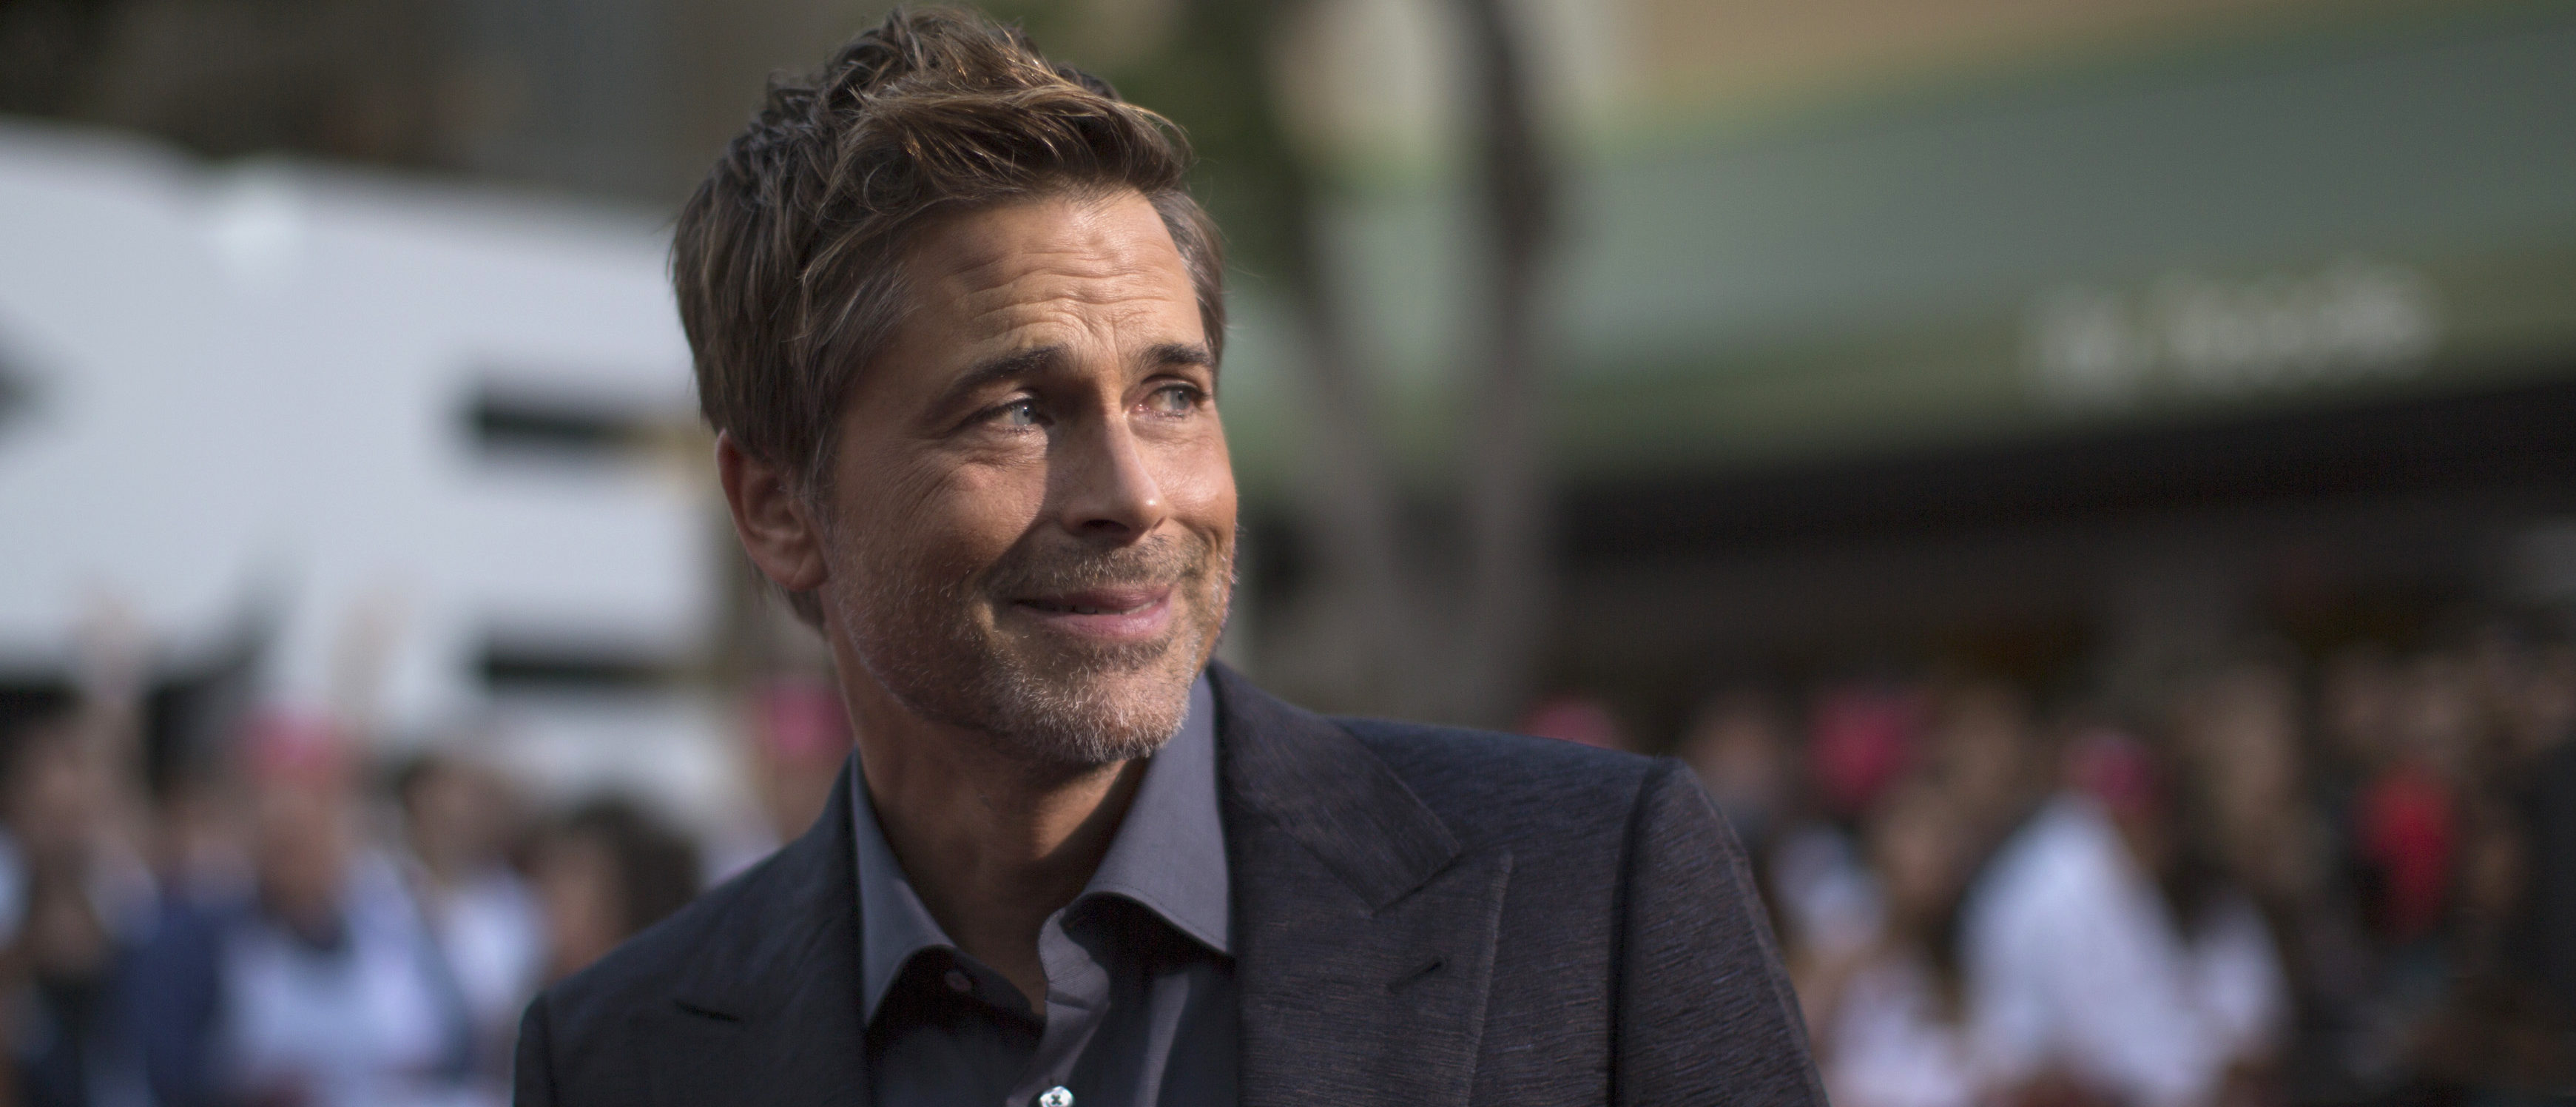 """Cast member Rob Lowe attends the premiere of """"Sex Tape"""" in Los Angeles, California July 10, 2014. REUTERS/Mario Anzuoni"""